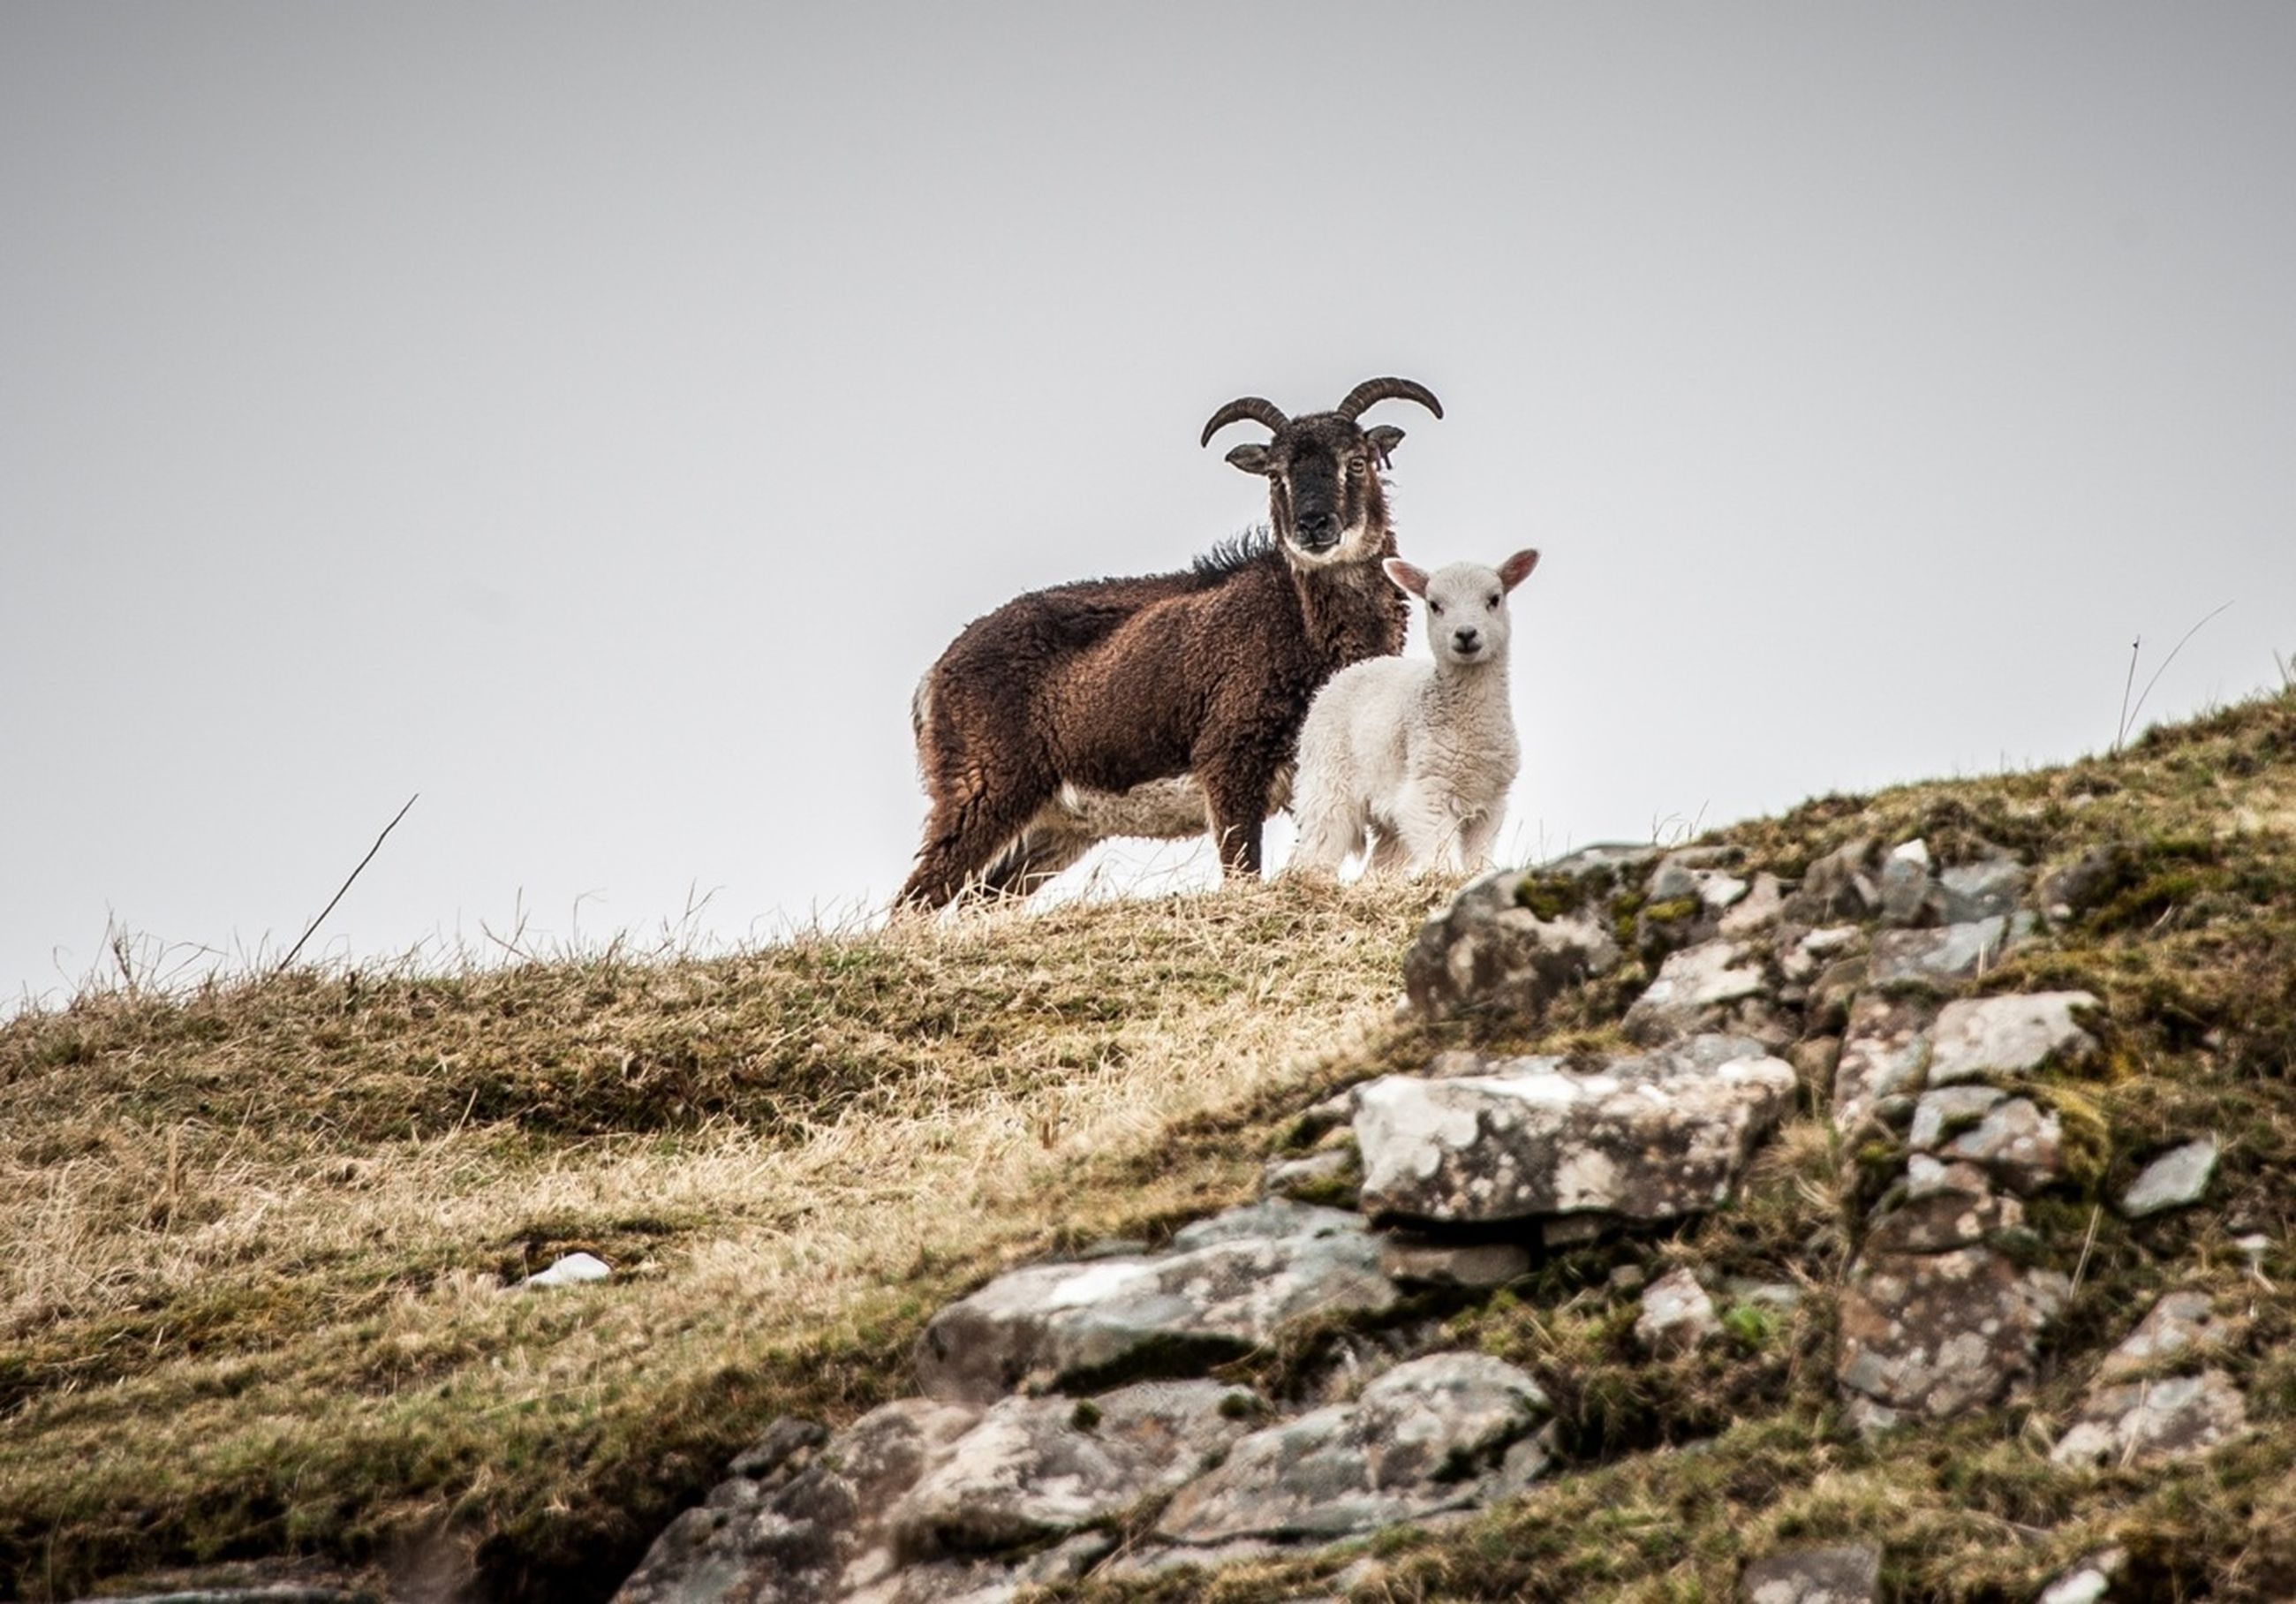 animal themes, mammal, one animal, clear sky, animals in the wild, wildlife, rock - object, copy space, low angle view, sitting, full length, safari animals, nature, day, outdoors, rock formation, no people, rock, standing, sky